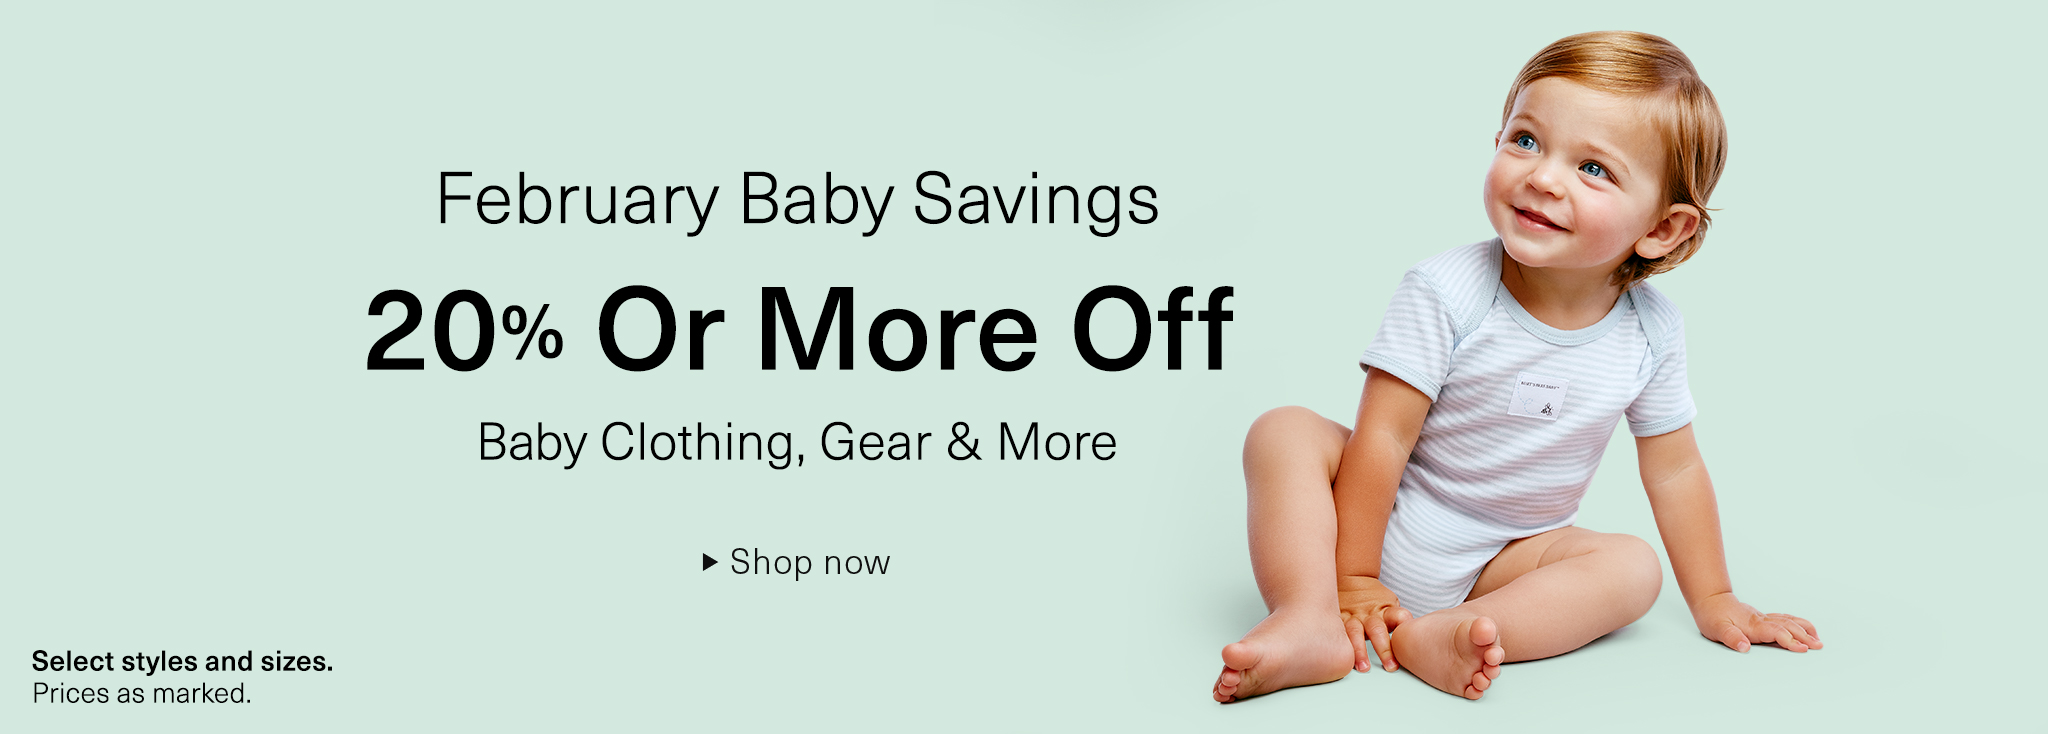 Sales - Baby Savings for Clothing, Gear & More